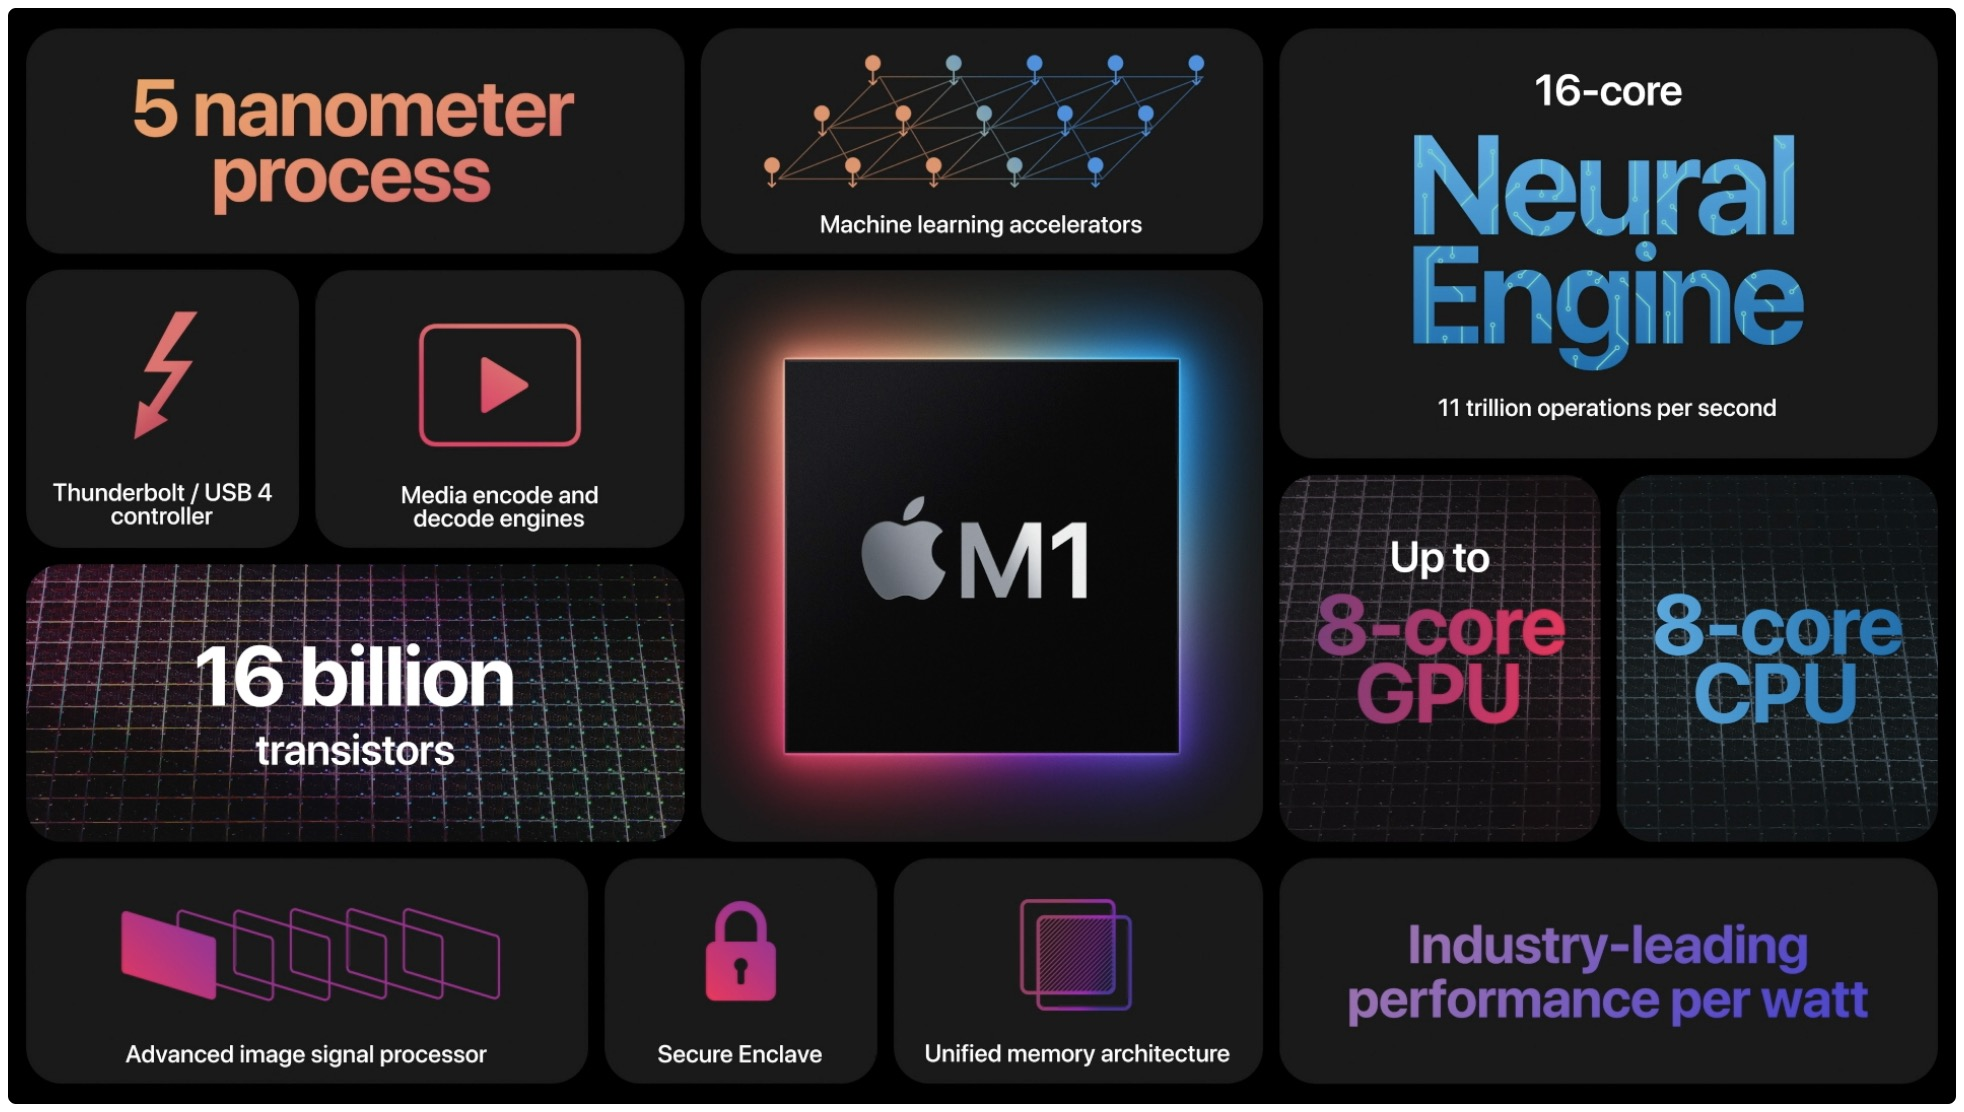 A WWDC 2020 slide listing the key features of the Apple M1 chip for Macs